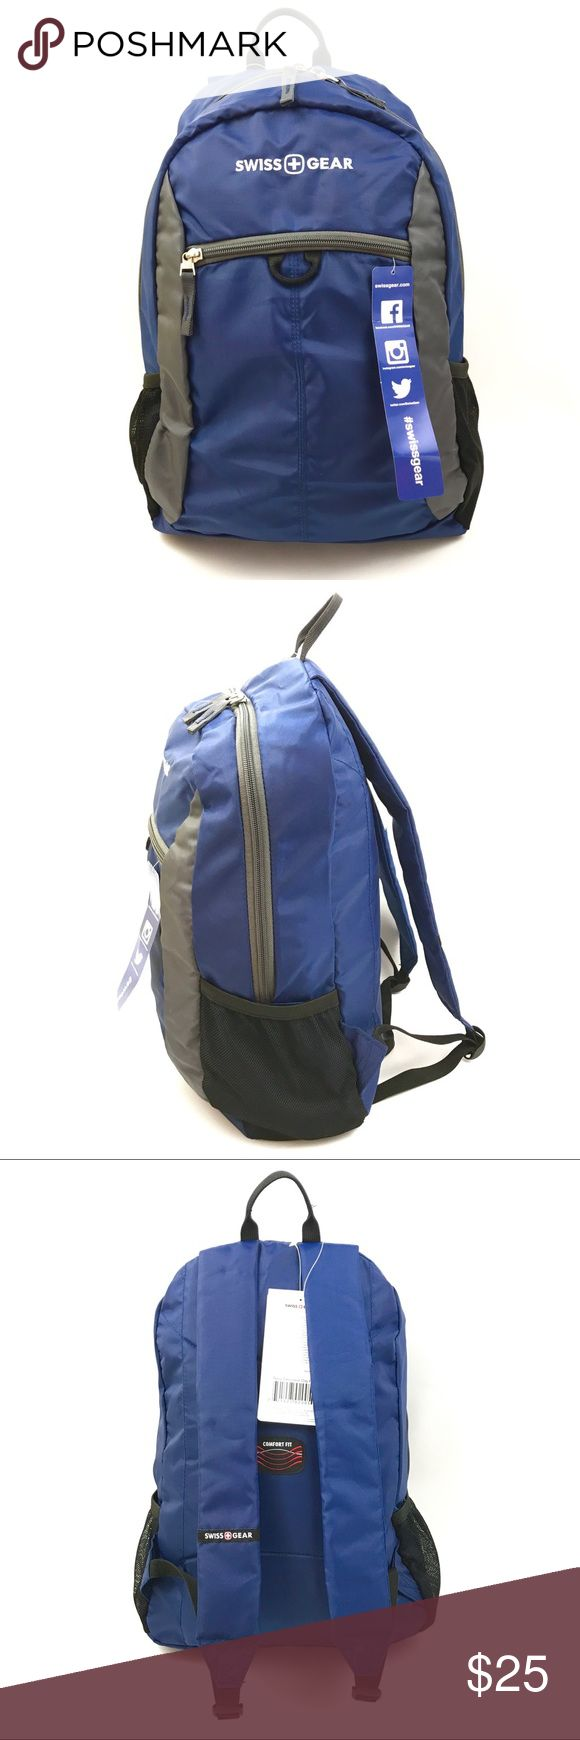 Swiss Gear Backpack New Blue Lightweight Black Full Zipper Inside Compartment Organizer Divider Padded Strap Water Bottle Mesh Adjustable Strap Height: 17 inches Length: 12 inches Depth: 5.5 inches also available in black SwissGear Bags Backpacks